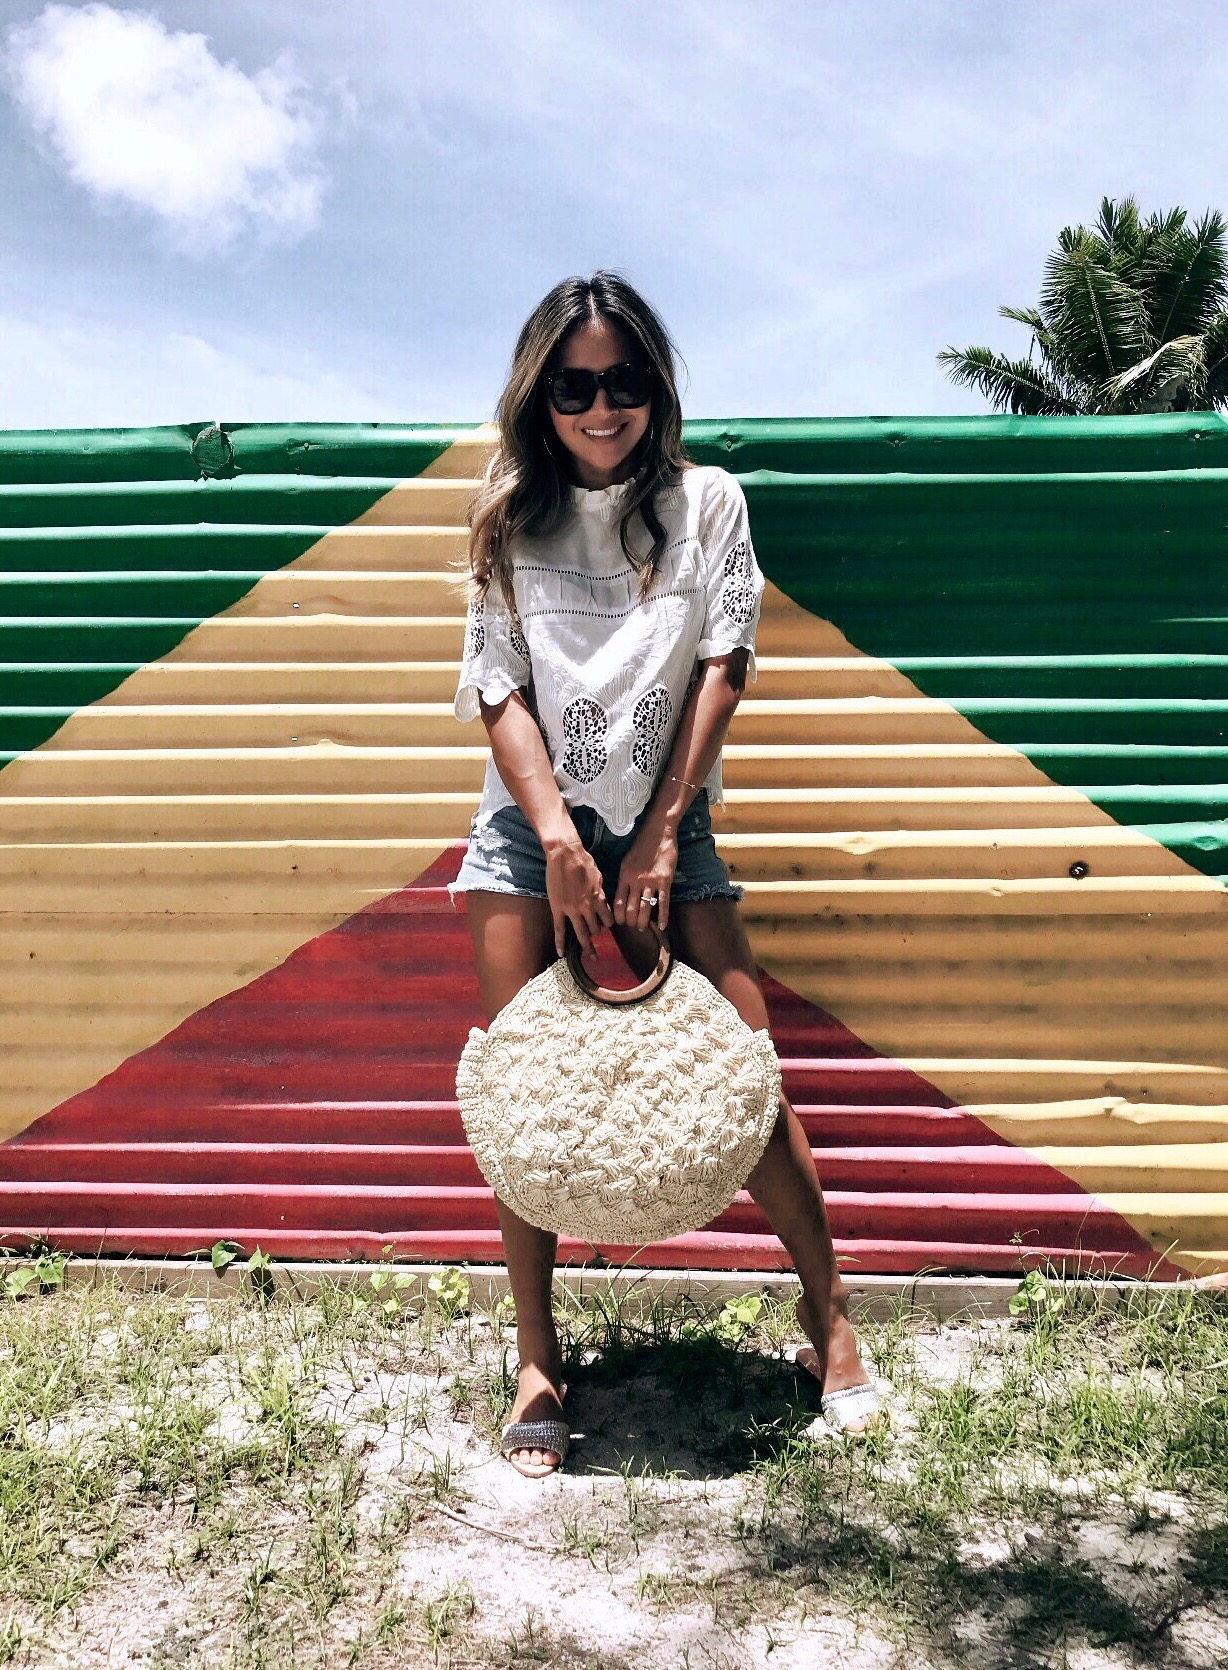 Randomly found this Jamaican inspired wall and had to take a pic.  This was one of the most hectic wedding planning days of all.  Glad I wore easy clothes because it was super hot!